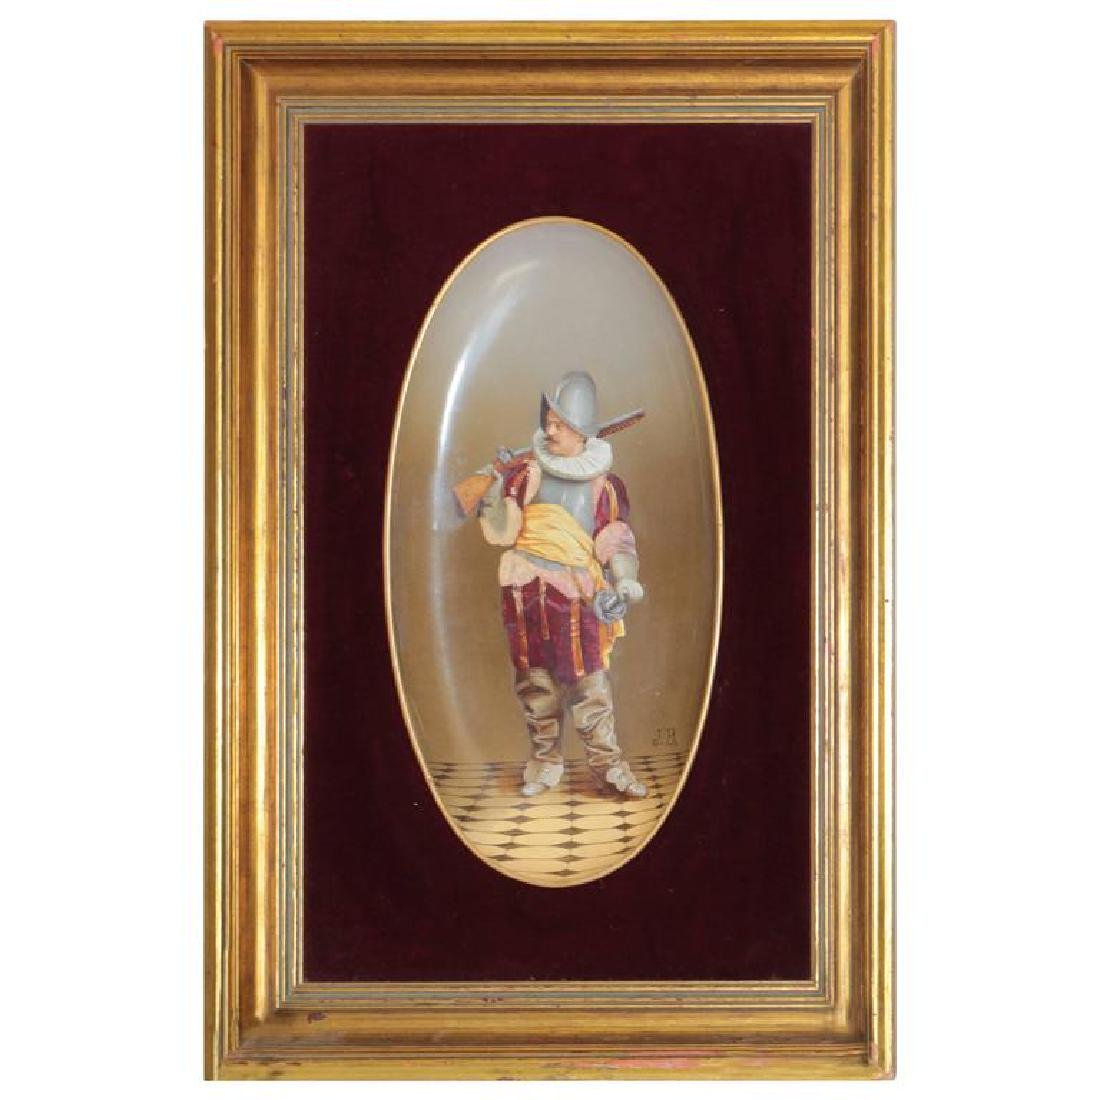 Framed Signed J.B. Hand-Painted Porcelain Plaque with